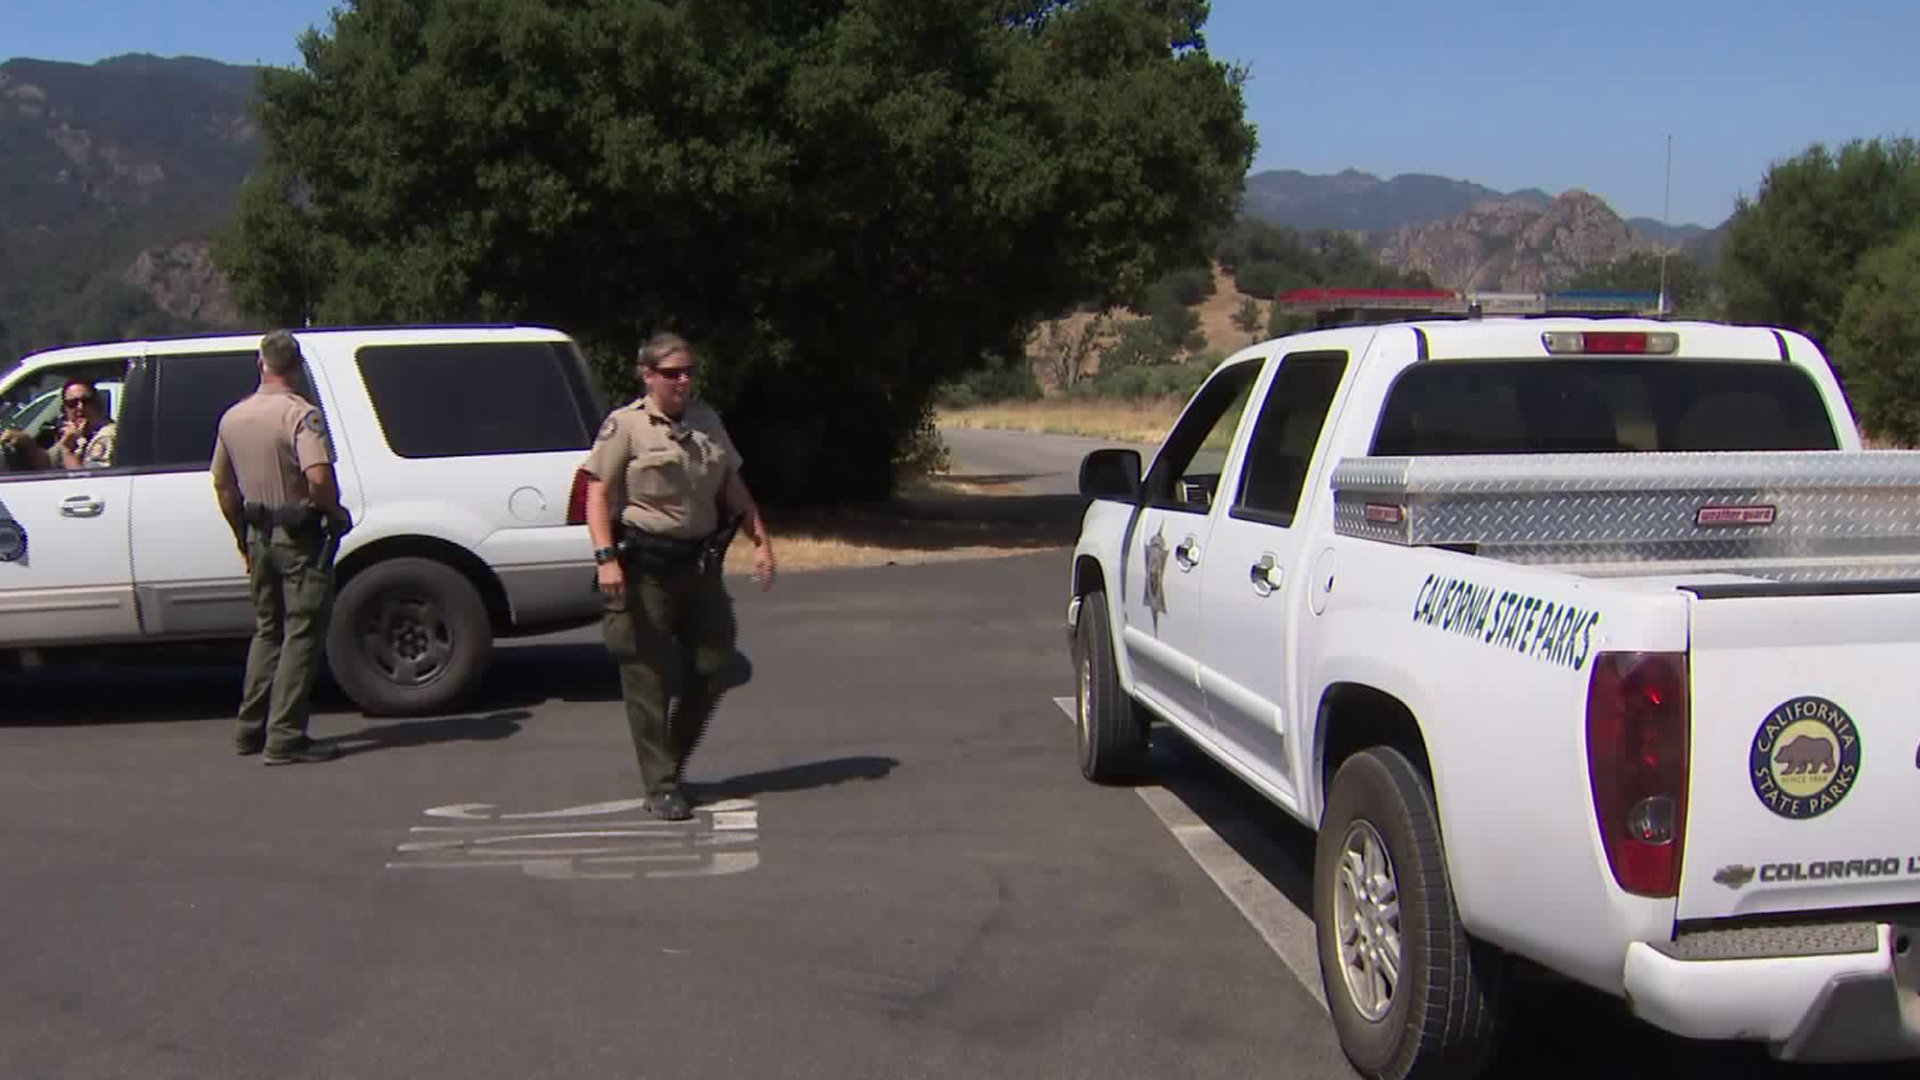 Officers investigate the shooting death of a man at the Malibu Creek State Park in Calabasas on June 22, 2018. (Credit: KTLA)